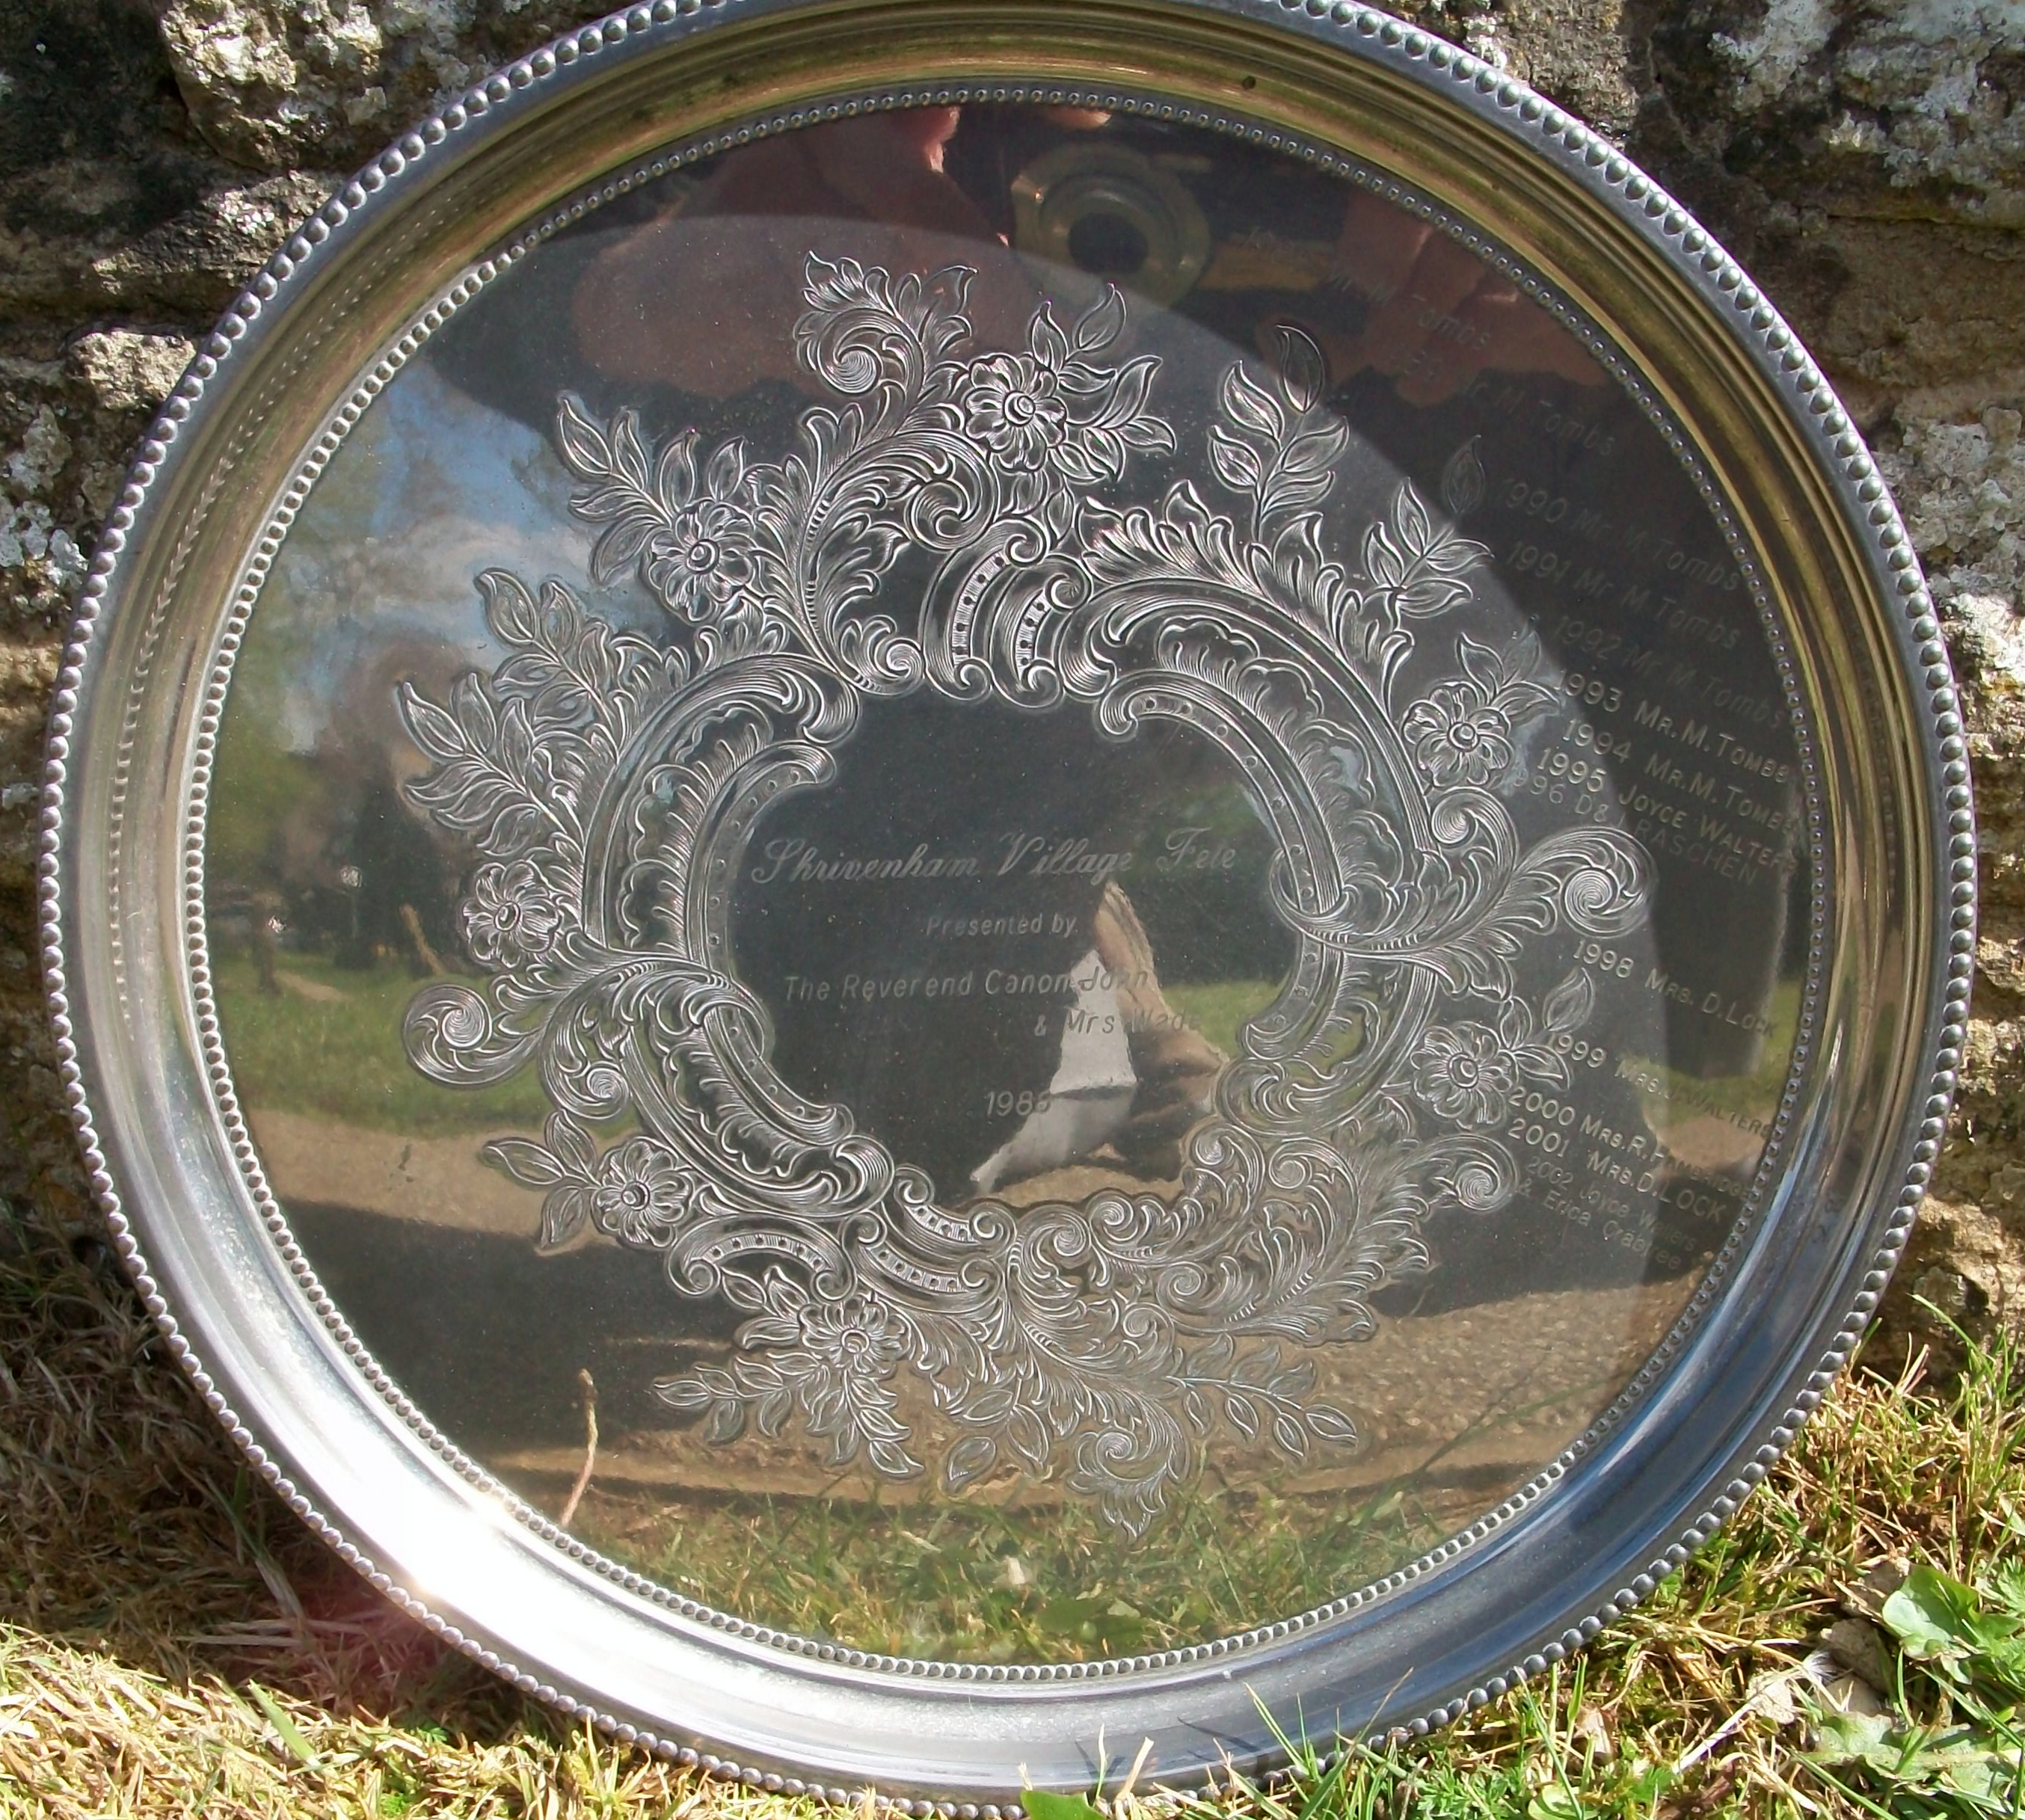 The Silver Plate donated by Rev Wade